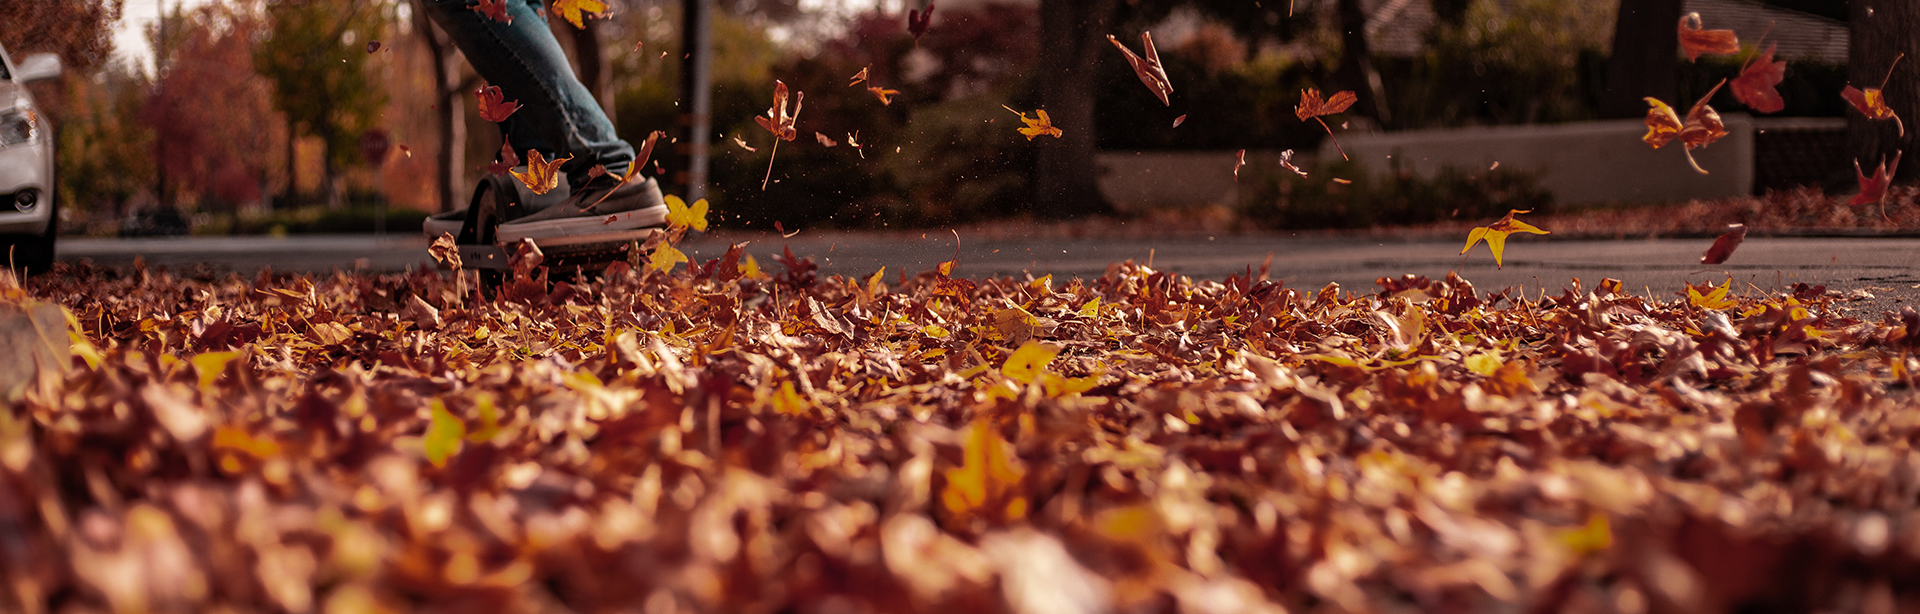 Autumn Leaves - Photo by Stitch Dias from Pexels